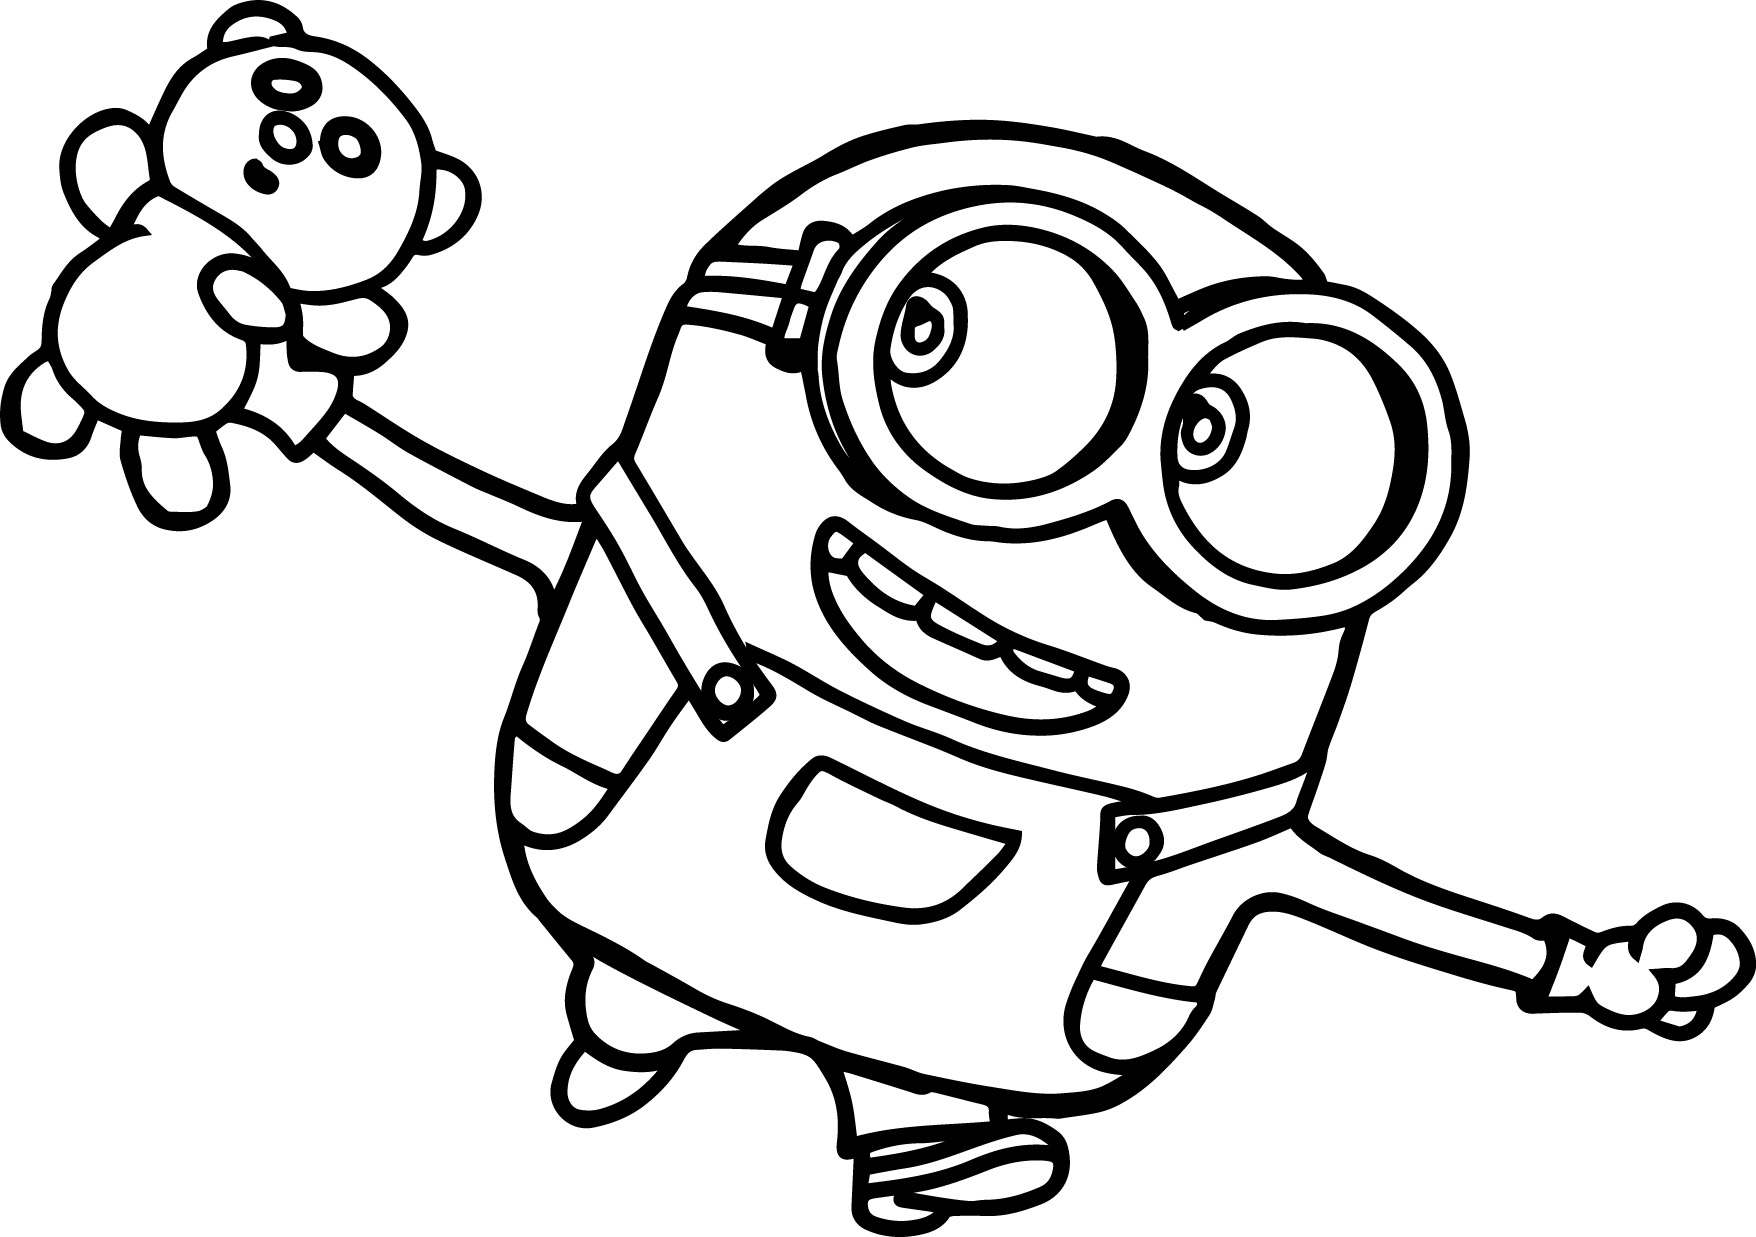 1756x1237 Minion Coloring Book Simple Minion Coloring Pages Online